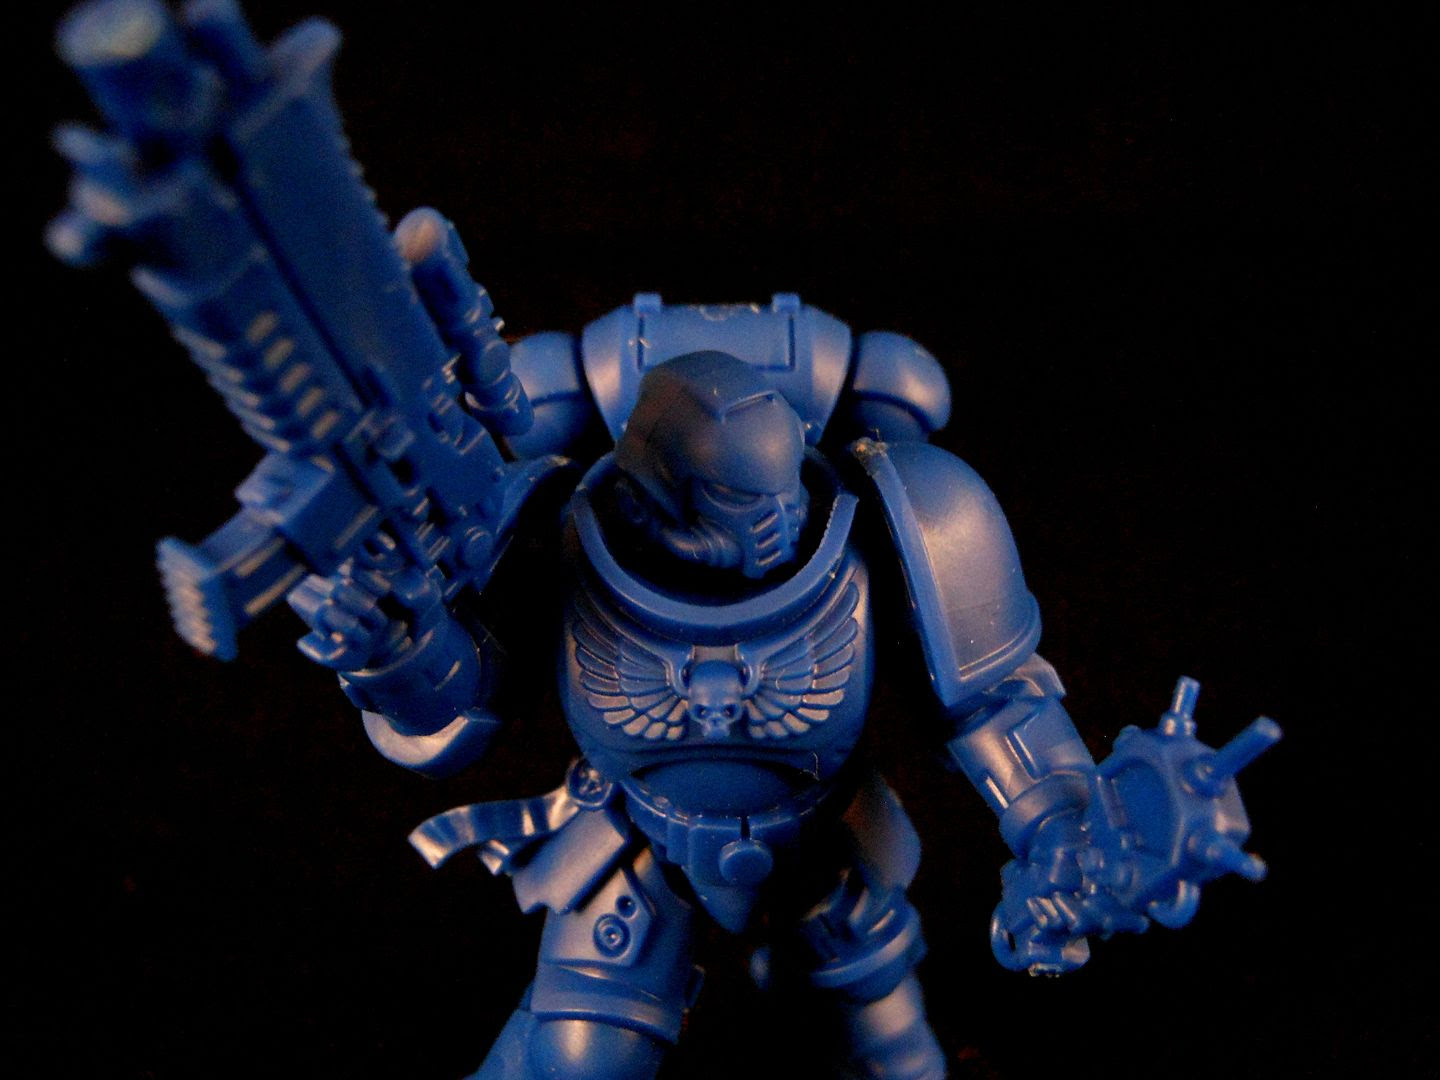 An Intercessor Space Marine with auspex from Warhammer 40,000: First Strike.